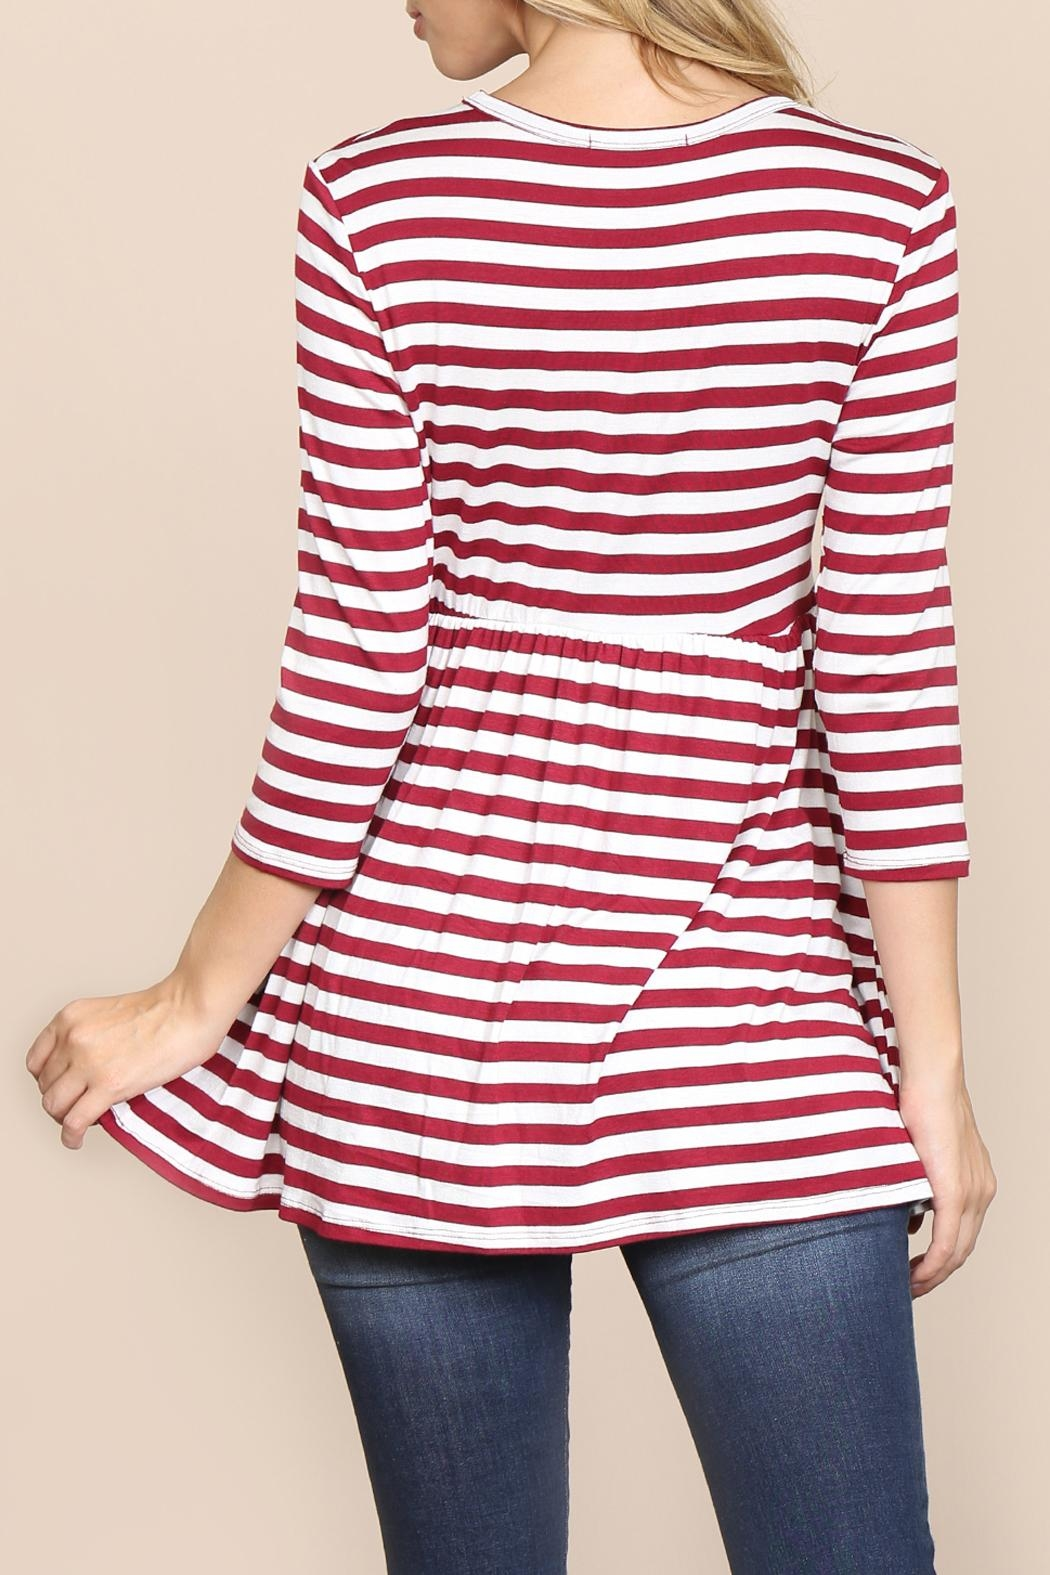 Riah Fashion Quarter-Sleeve Babydoll-Striped-Tunic - Side Cropped Image